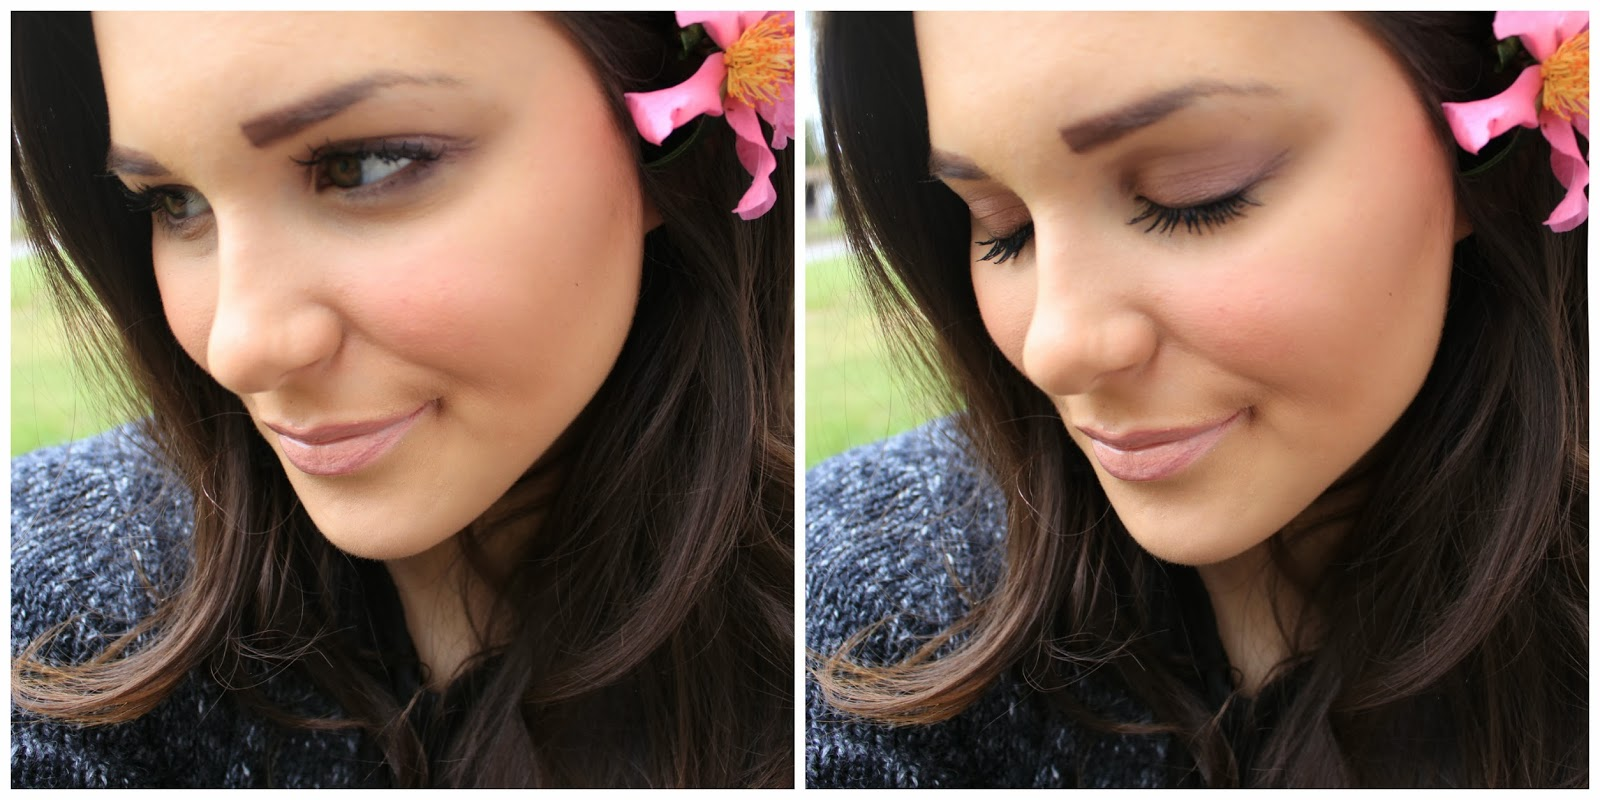 Beauty blogger Mash Elle shares an easy everyday natural look using Urban Decay's Naked 3 palette